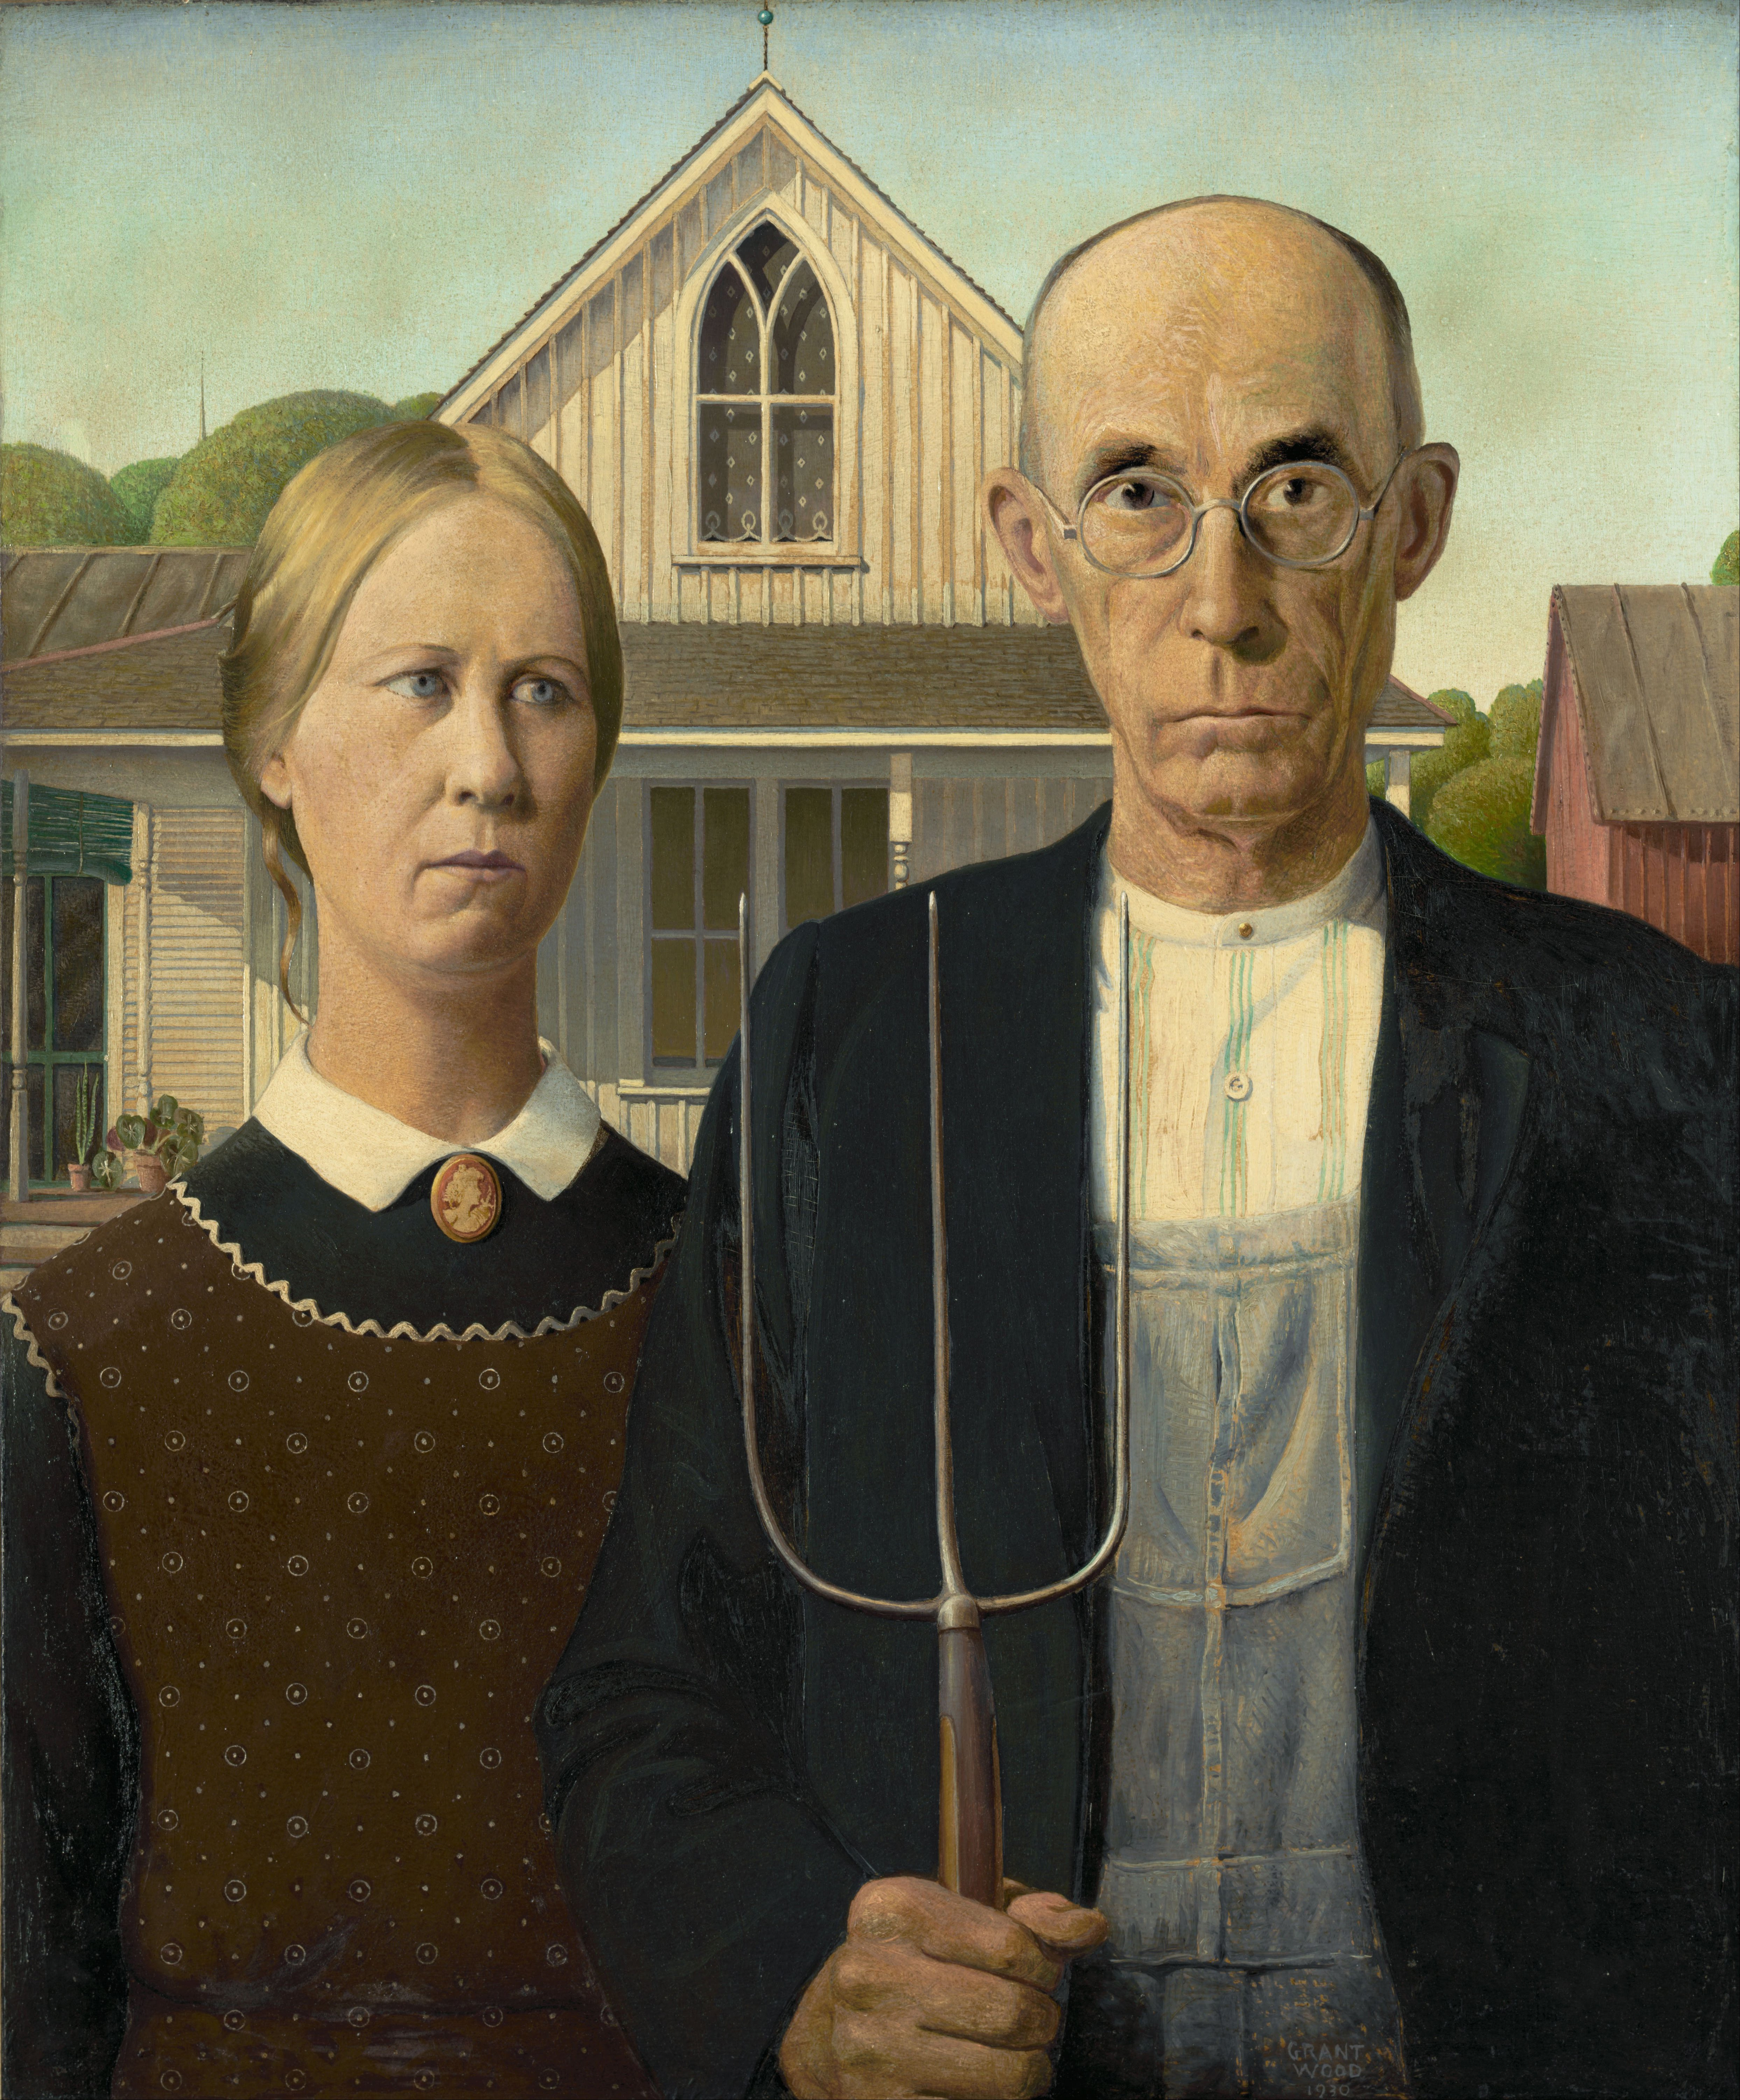 Grant Wood [Public domain], via Wikimedia Commons